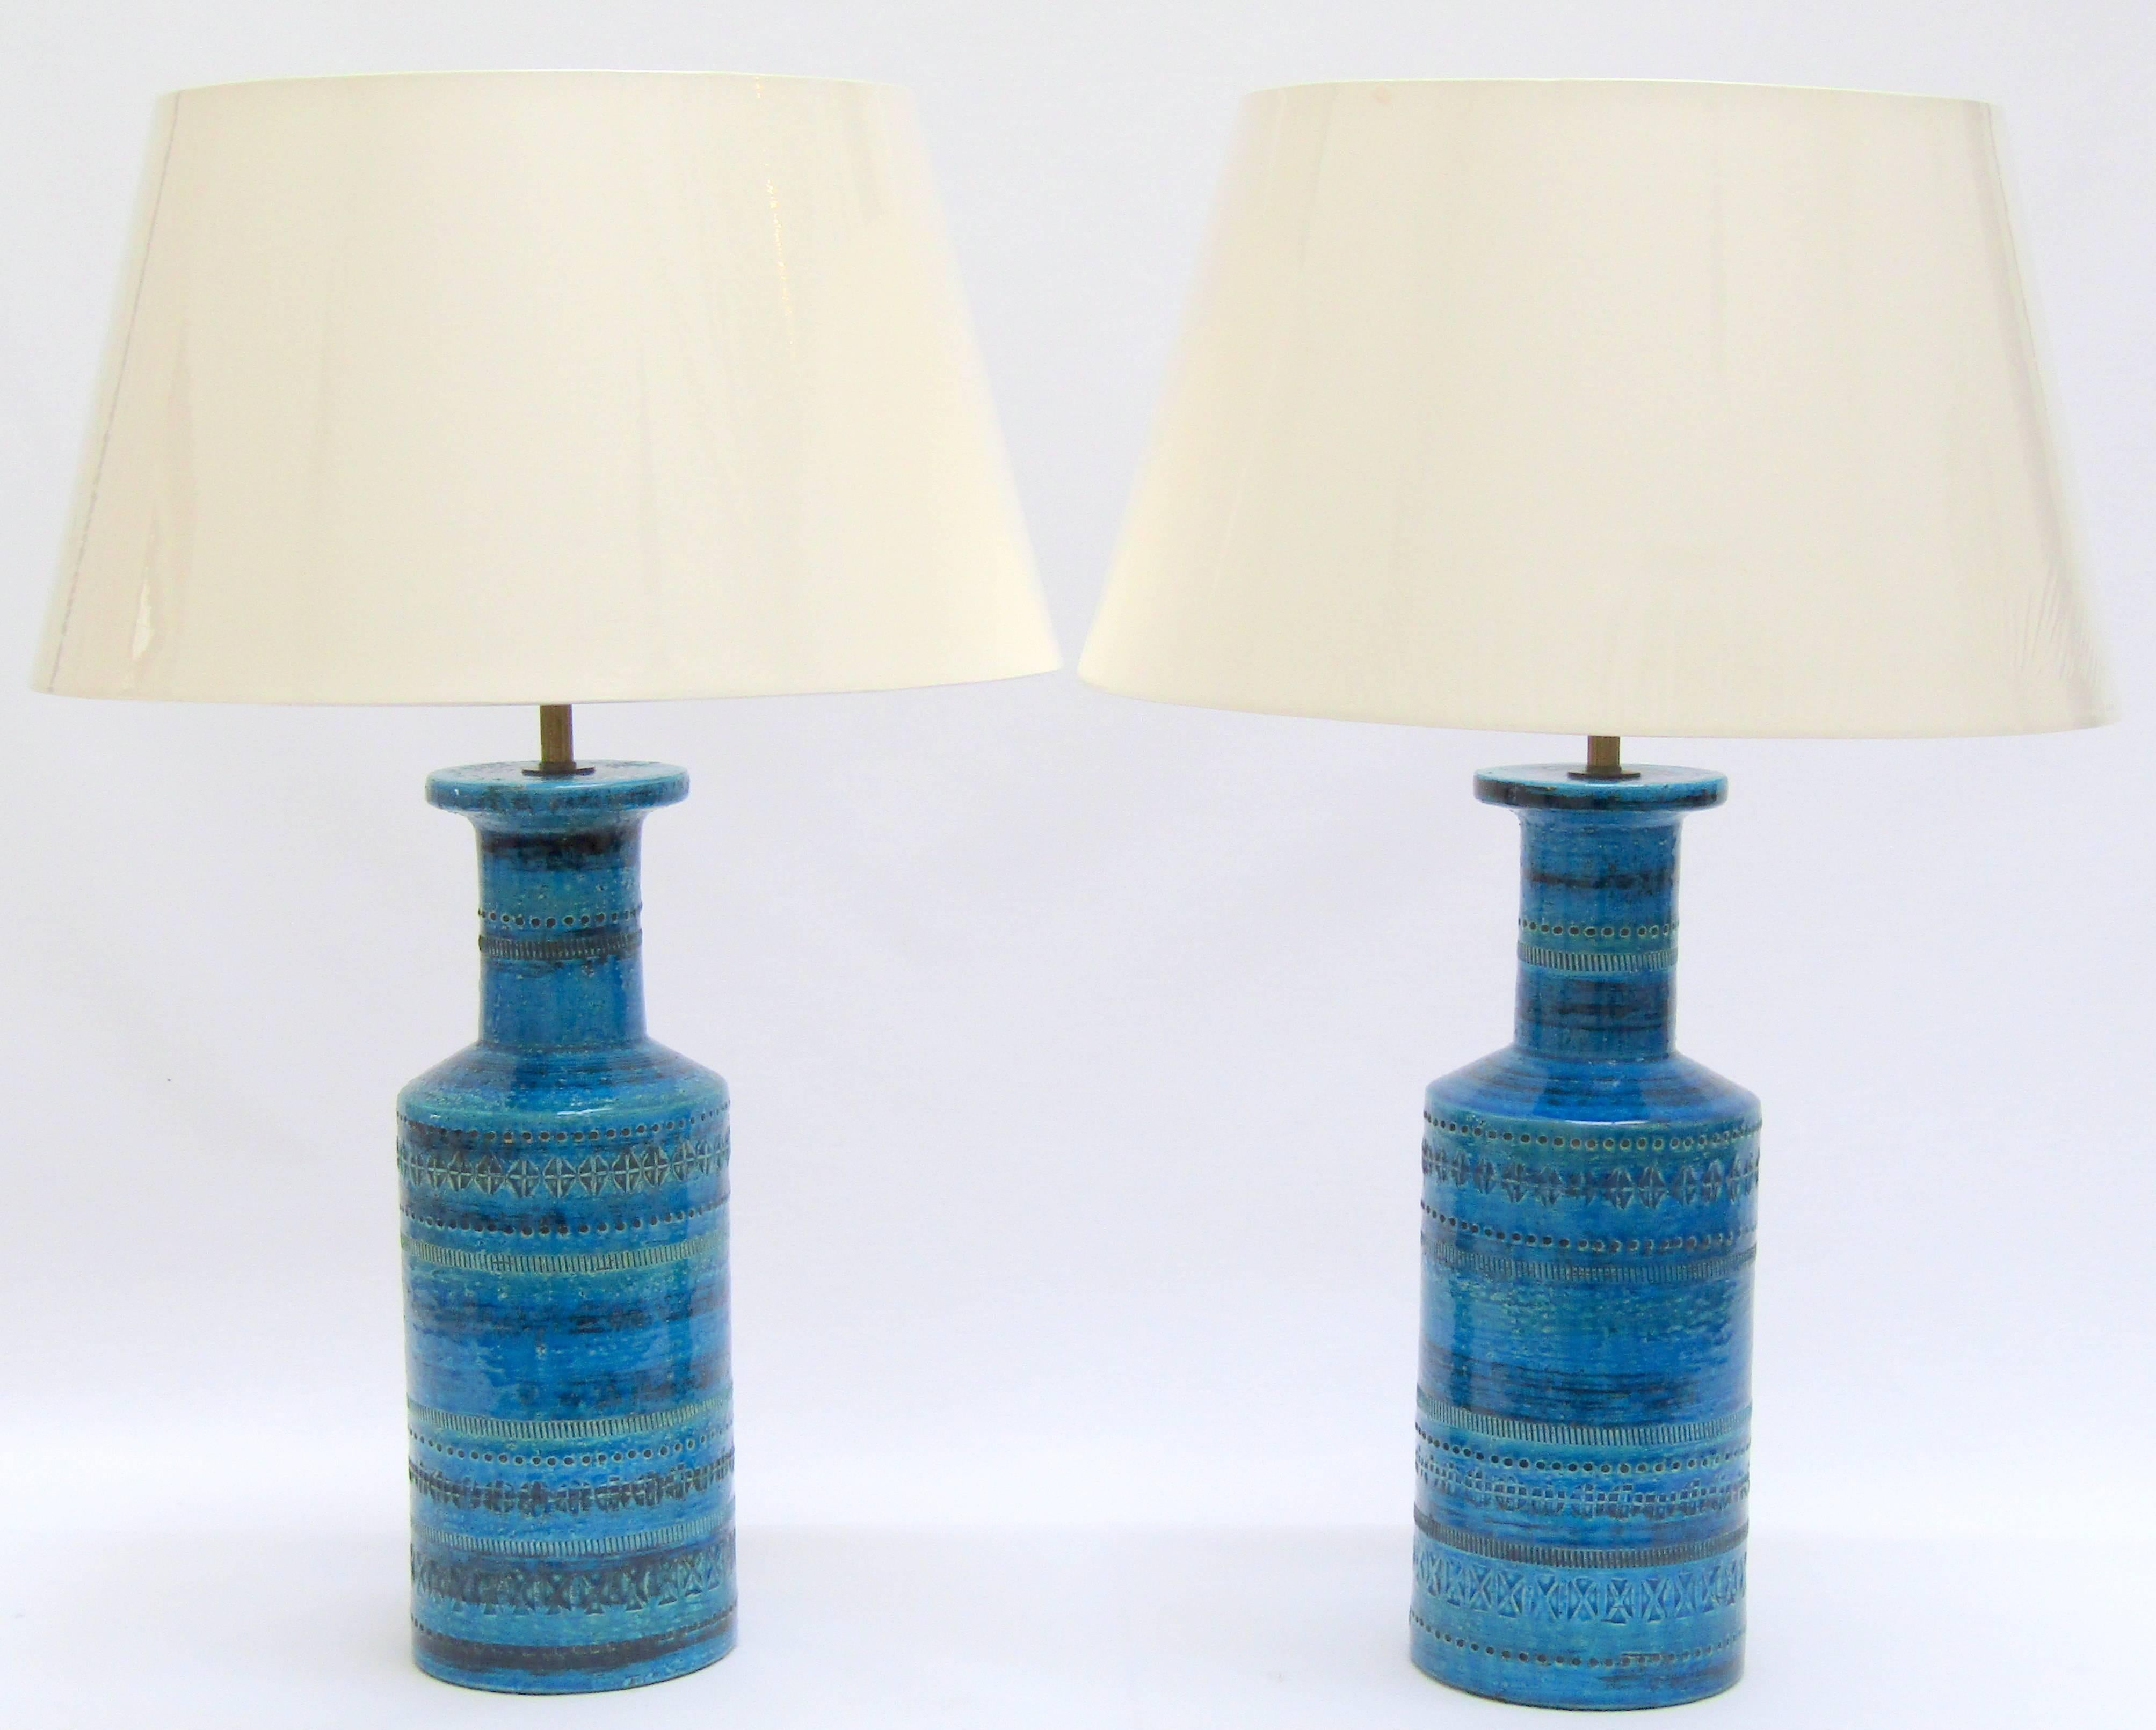 A Pair Of Ceramic Rimini Blue Table Lamps Designed By Aldo Londi For  Bitossi Re